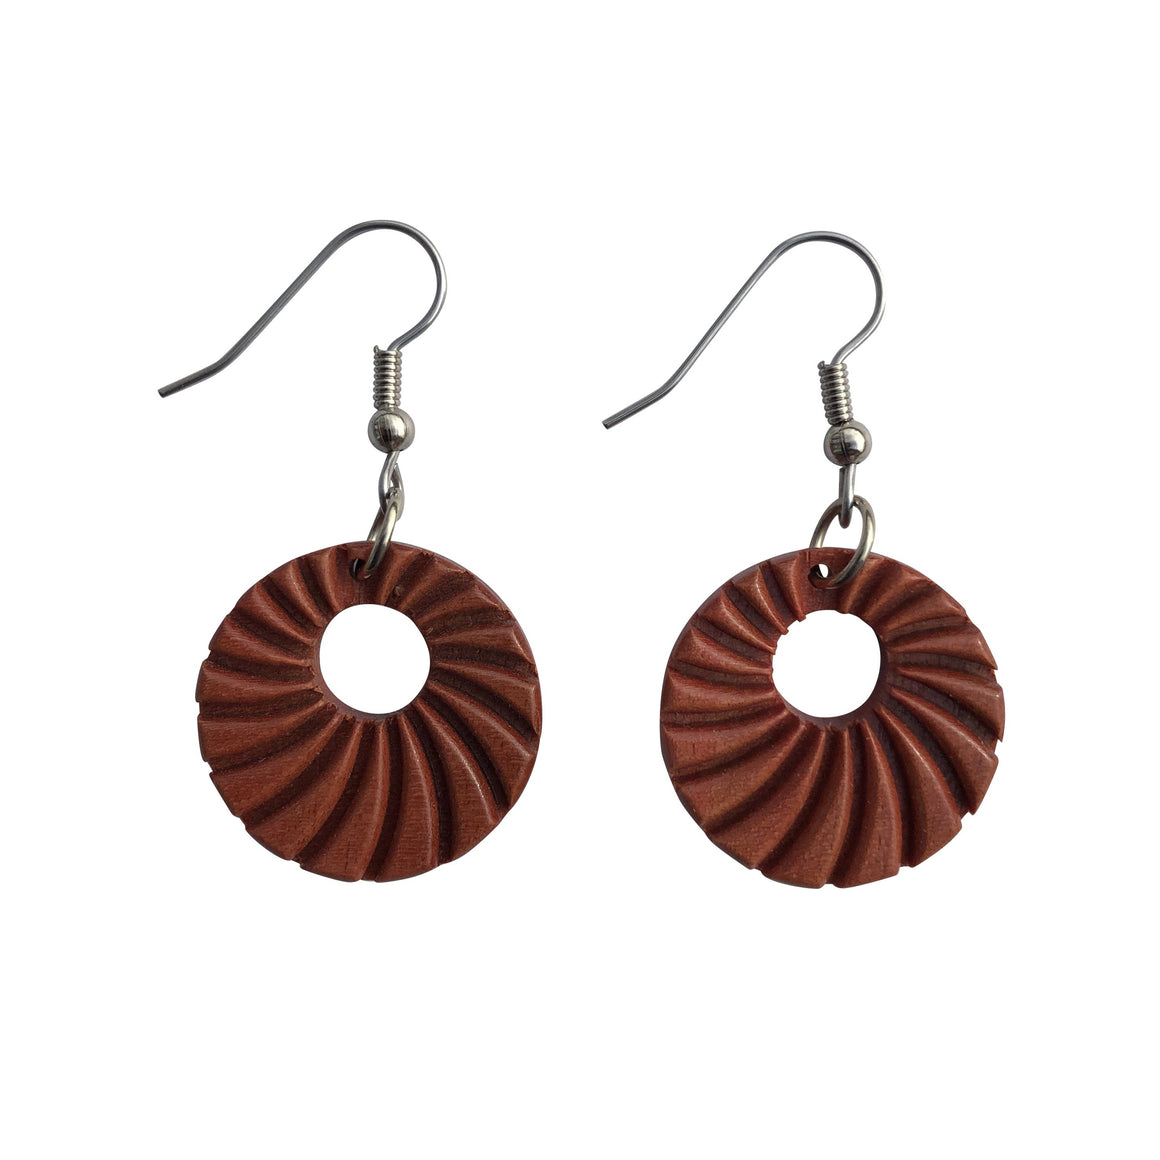 Earrings - Small Hoop